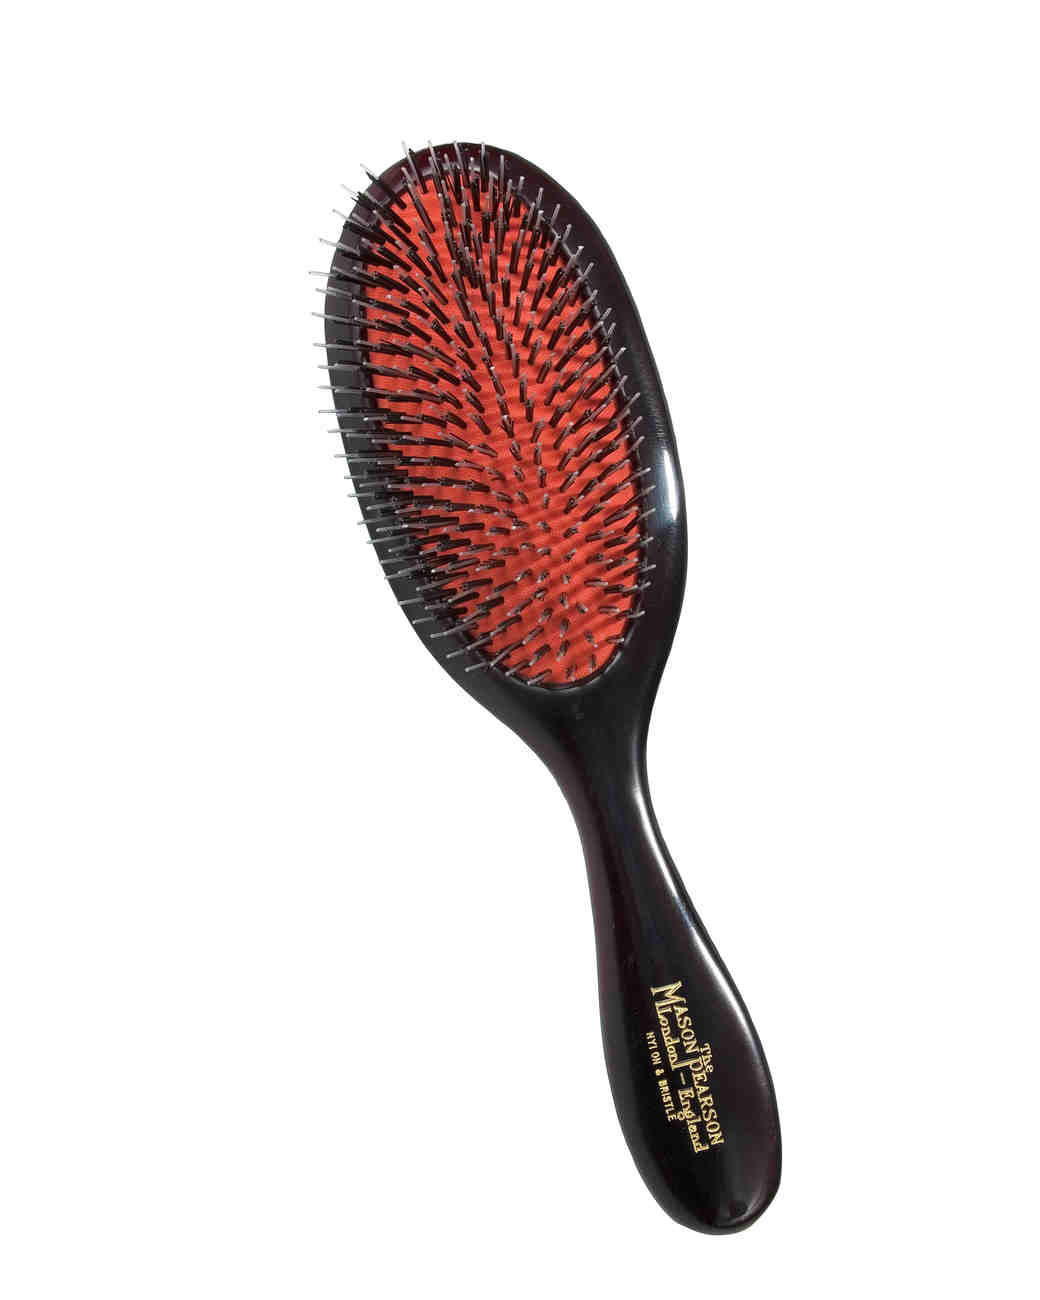 mason-pearson-handy-bristle-mix-hairbrush-0314.jpg